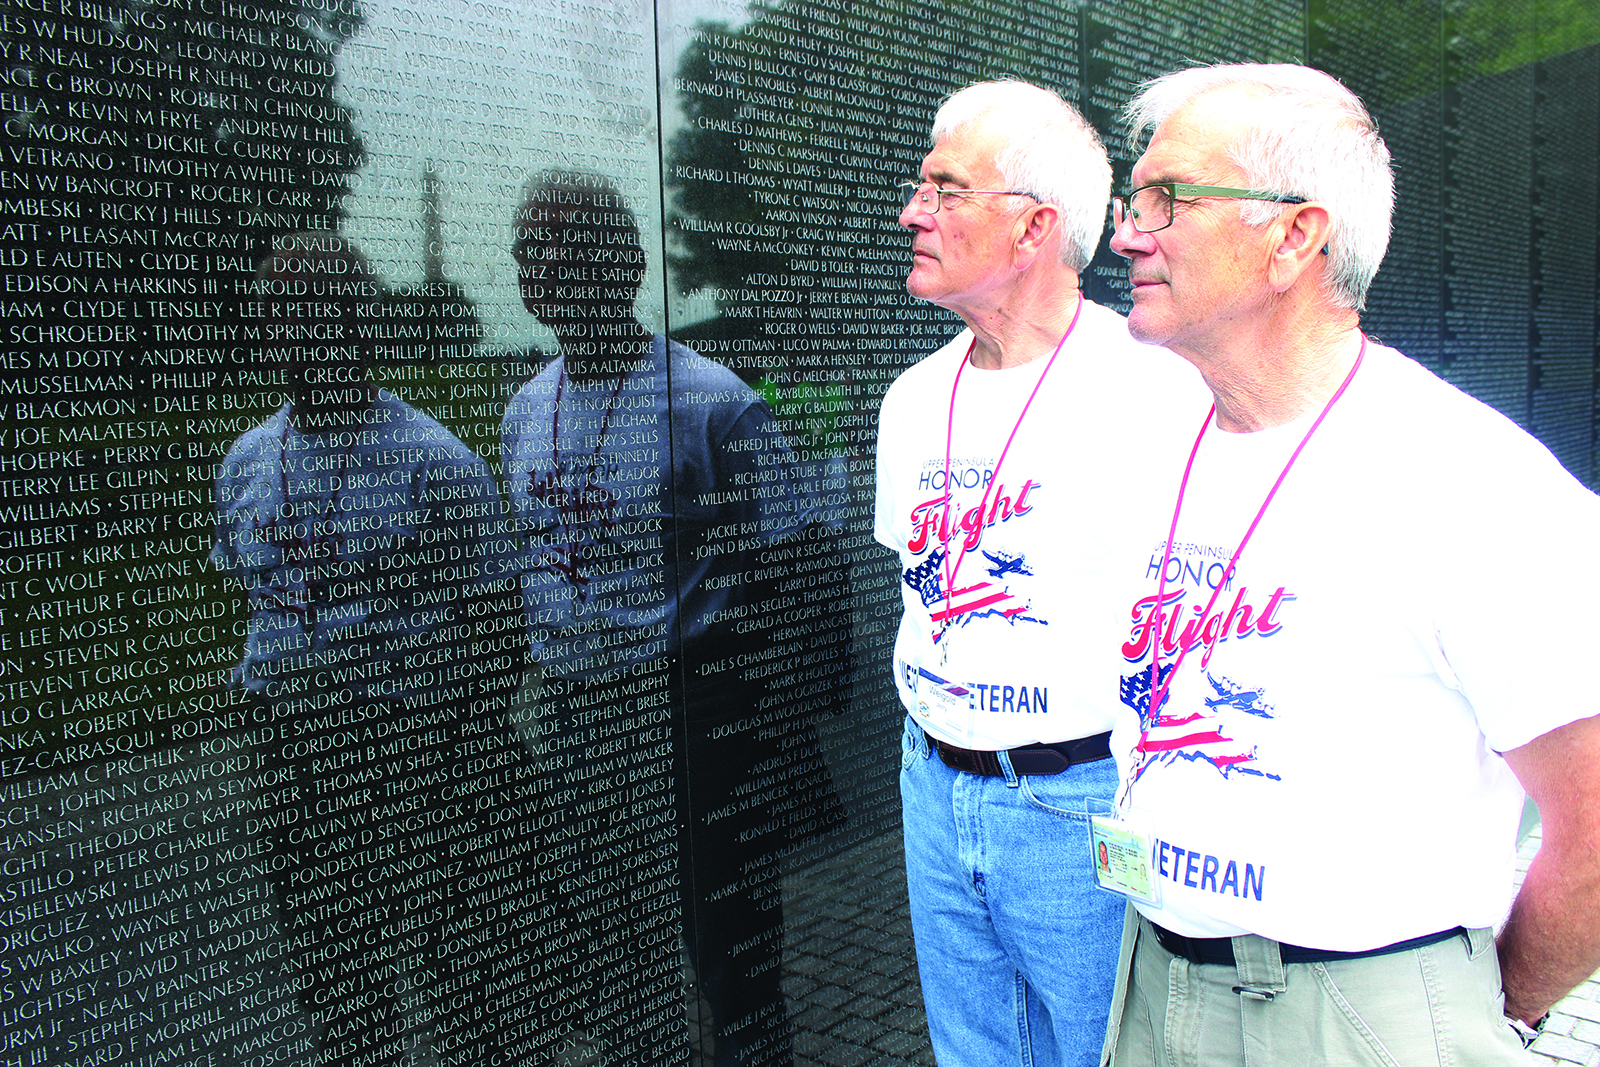 Vietnam Veterans Share Memories